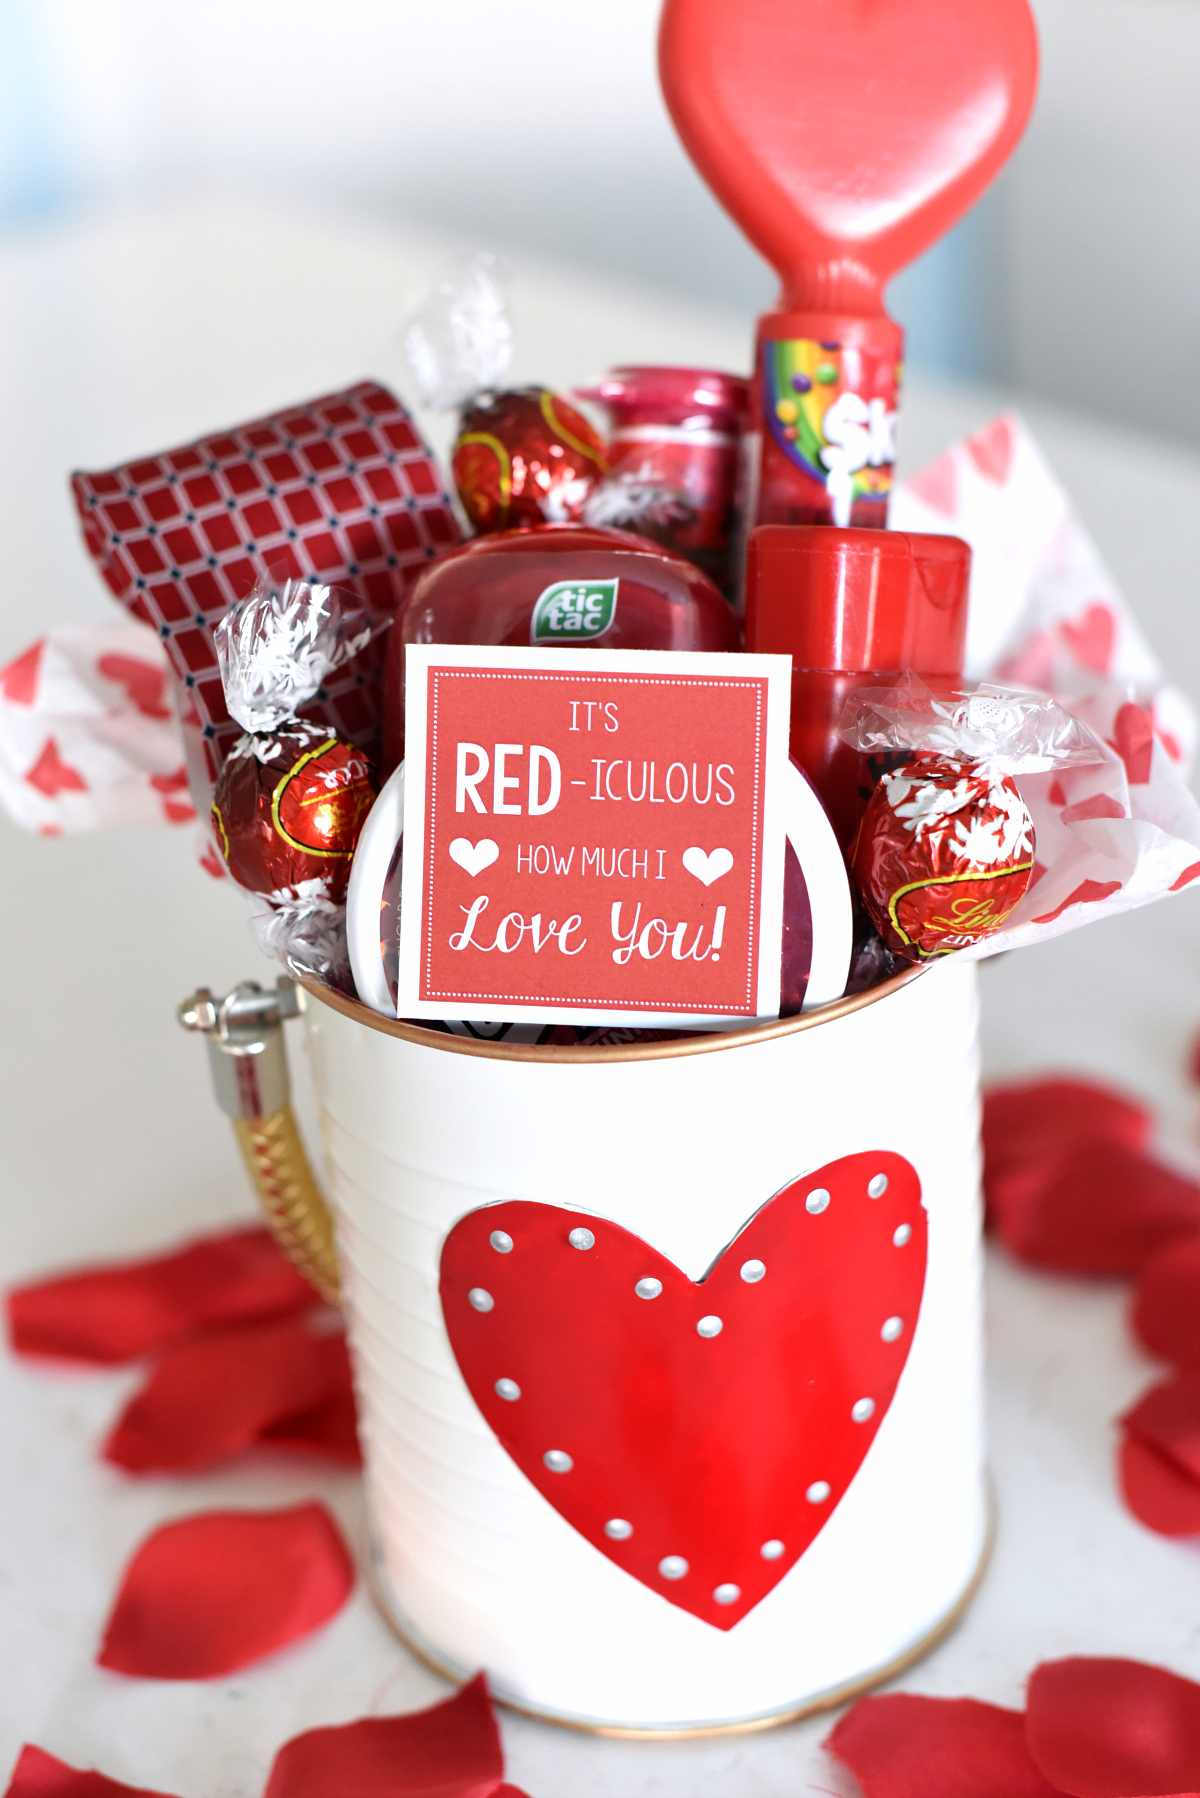 10 Elegant Good Gift Ideas For Valentines Day 25 diy valentines day gift ideas teens will love raising teens today 2020